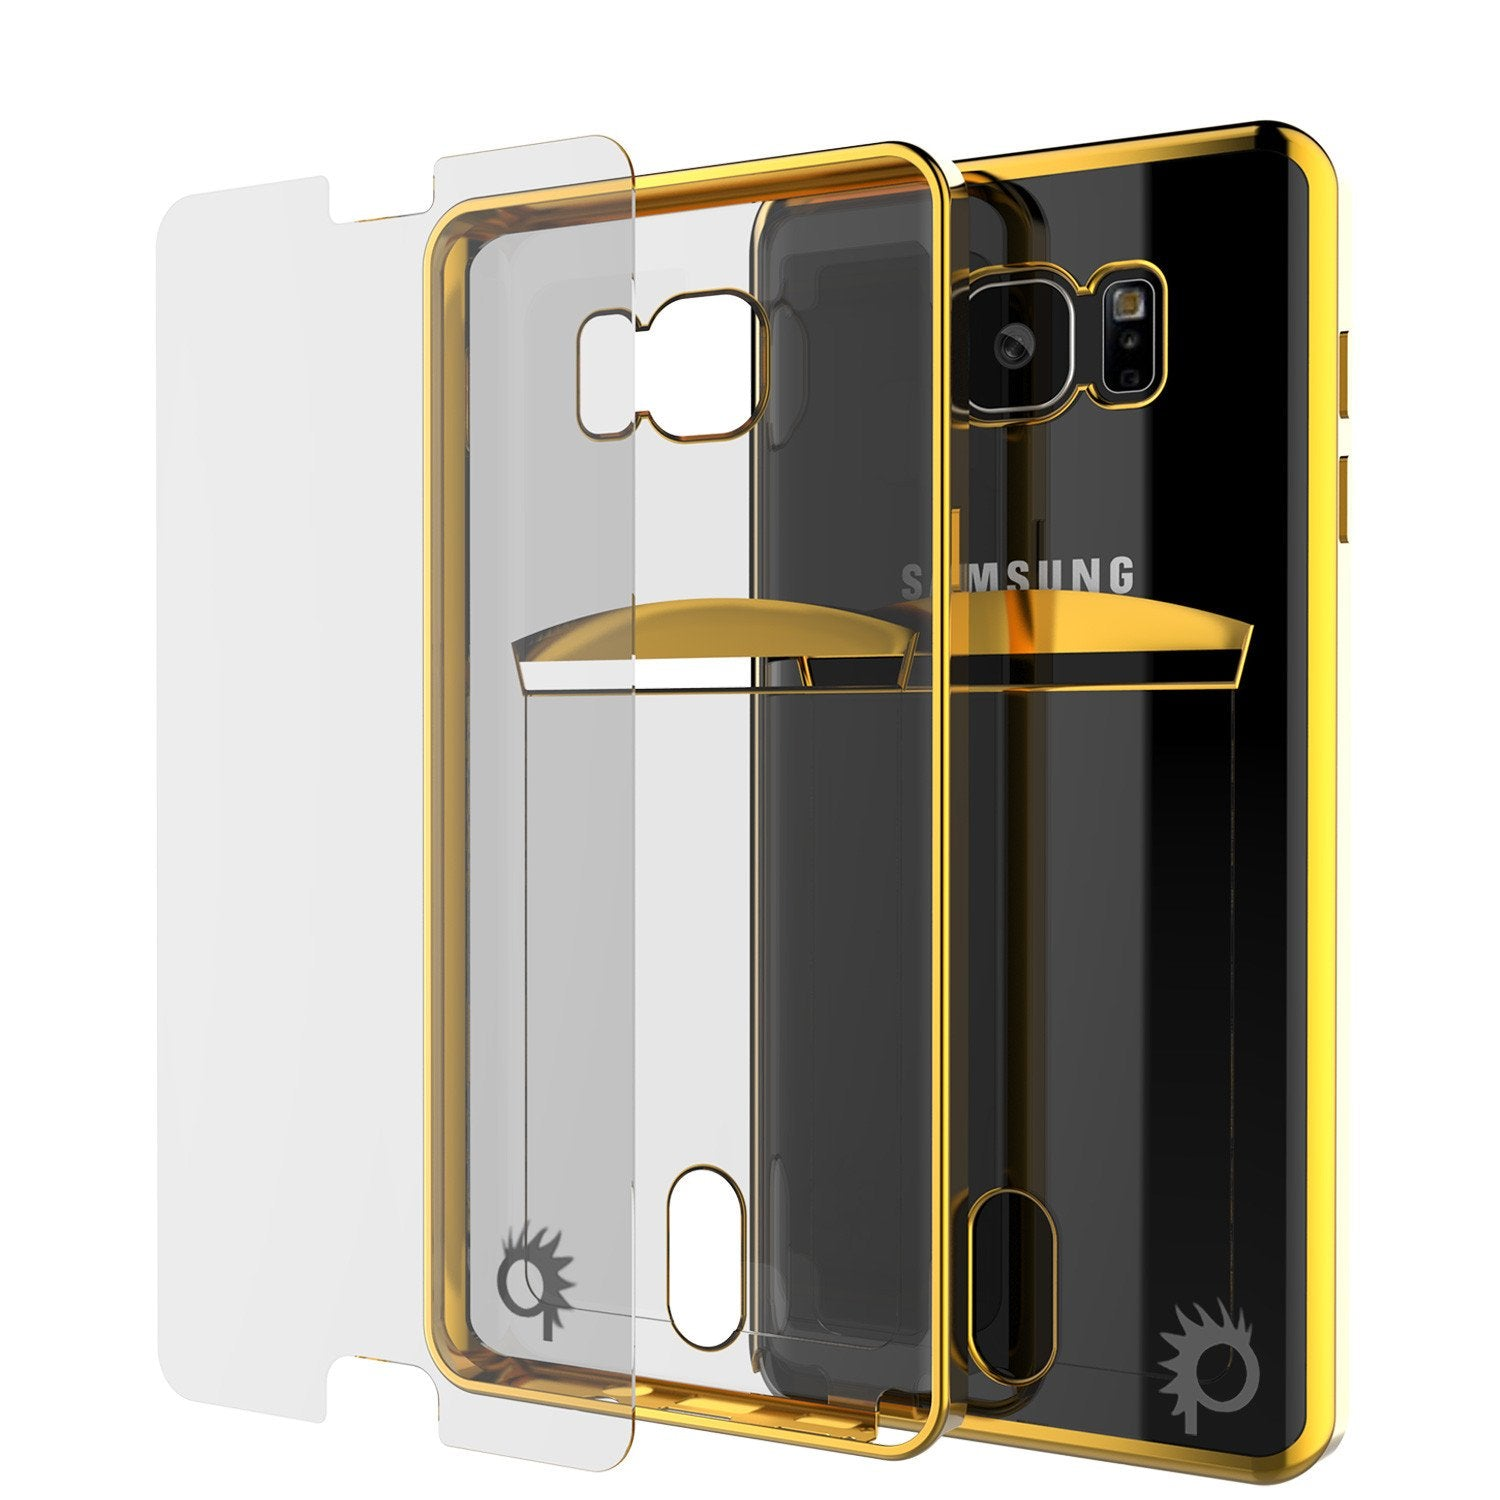 Galaxy Note 5 Case, Punkcase® Lucid Gold Series Protector Case